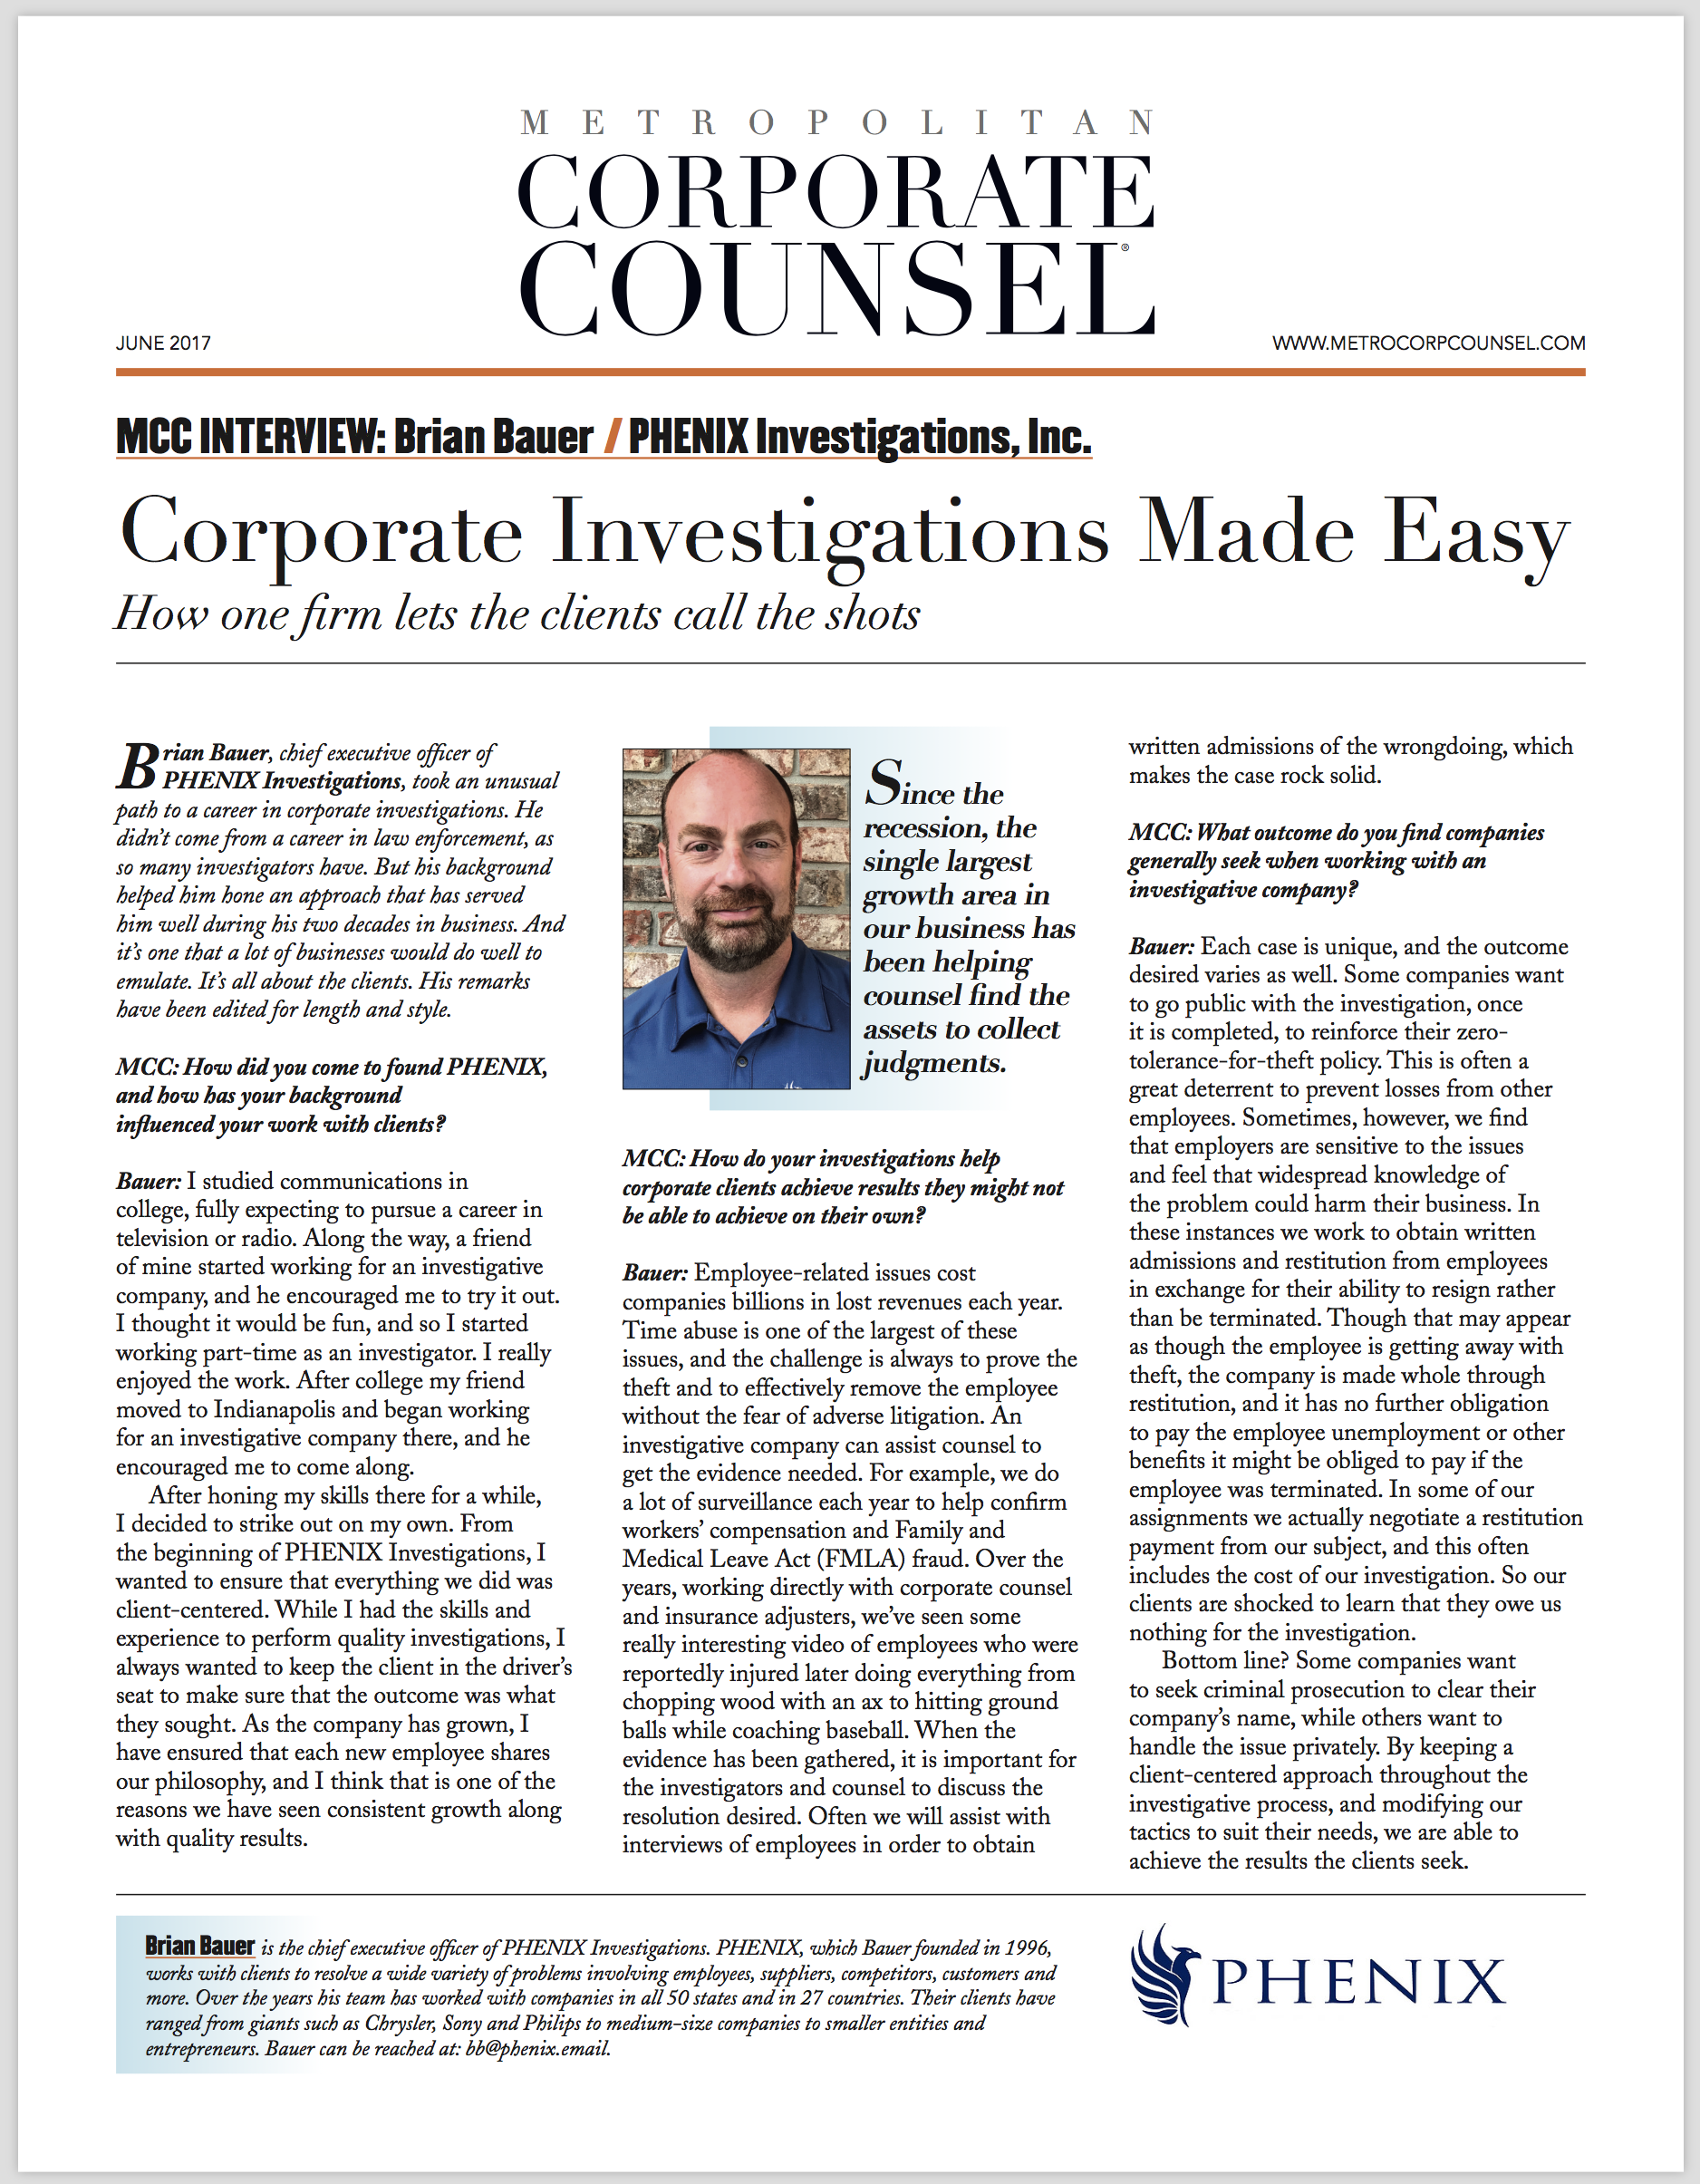 Brian Bauer, CEO of PHENIX, is featured in national publication. - Corporate Investigations Made Easy, by Corporate Counsel